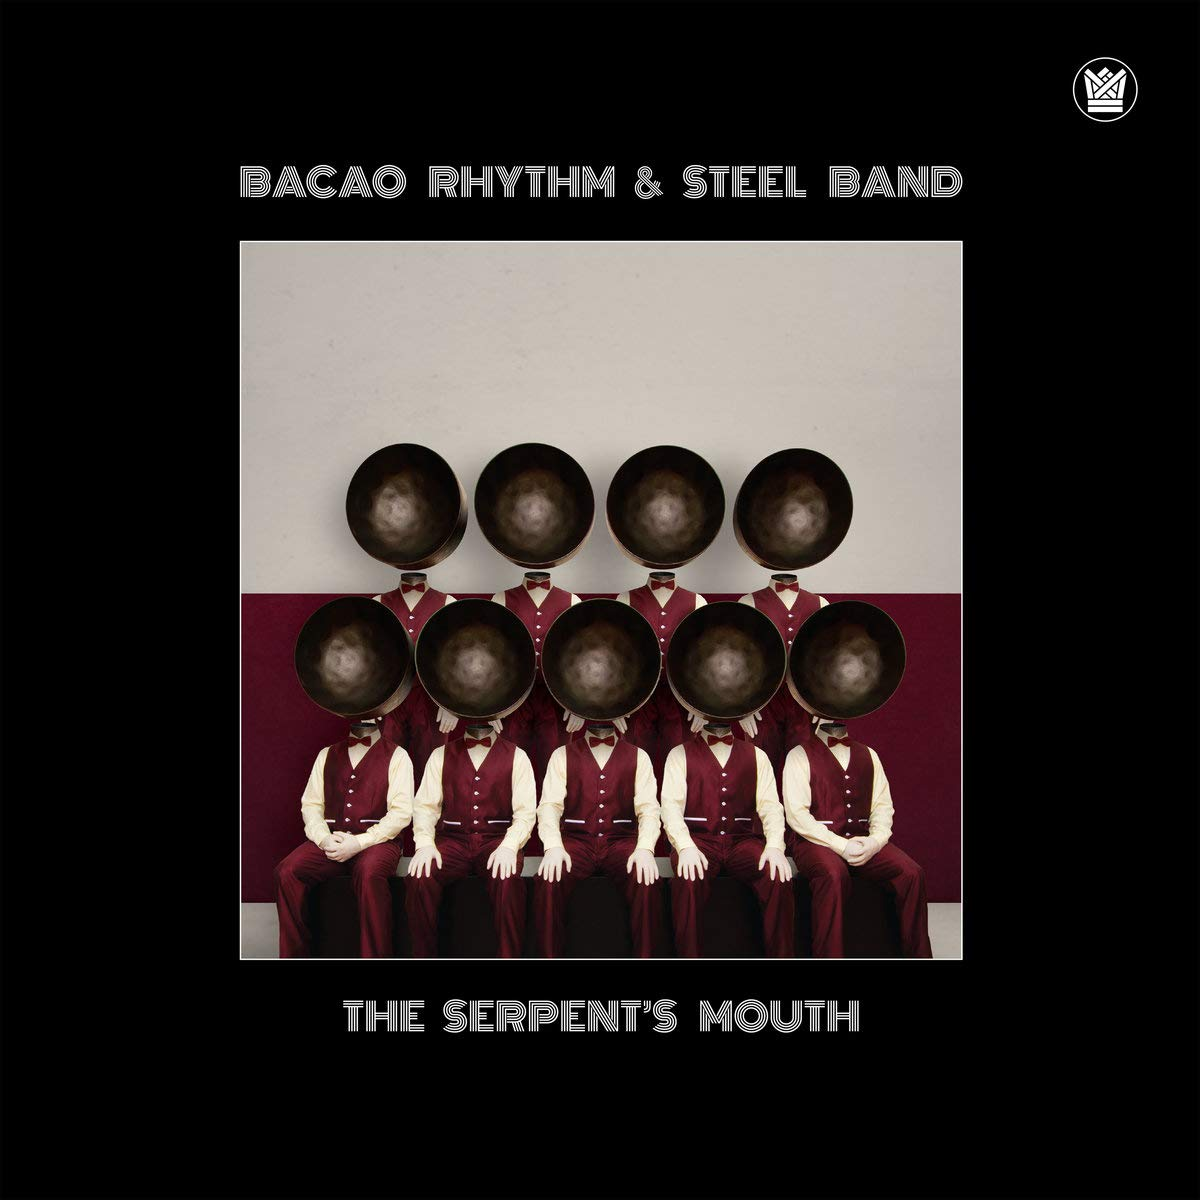 Vinilo : Bacao Rhythm & Steel Band - The Serpent's Mouth (LP Vinyl)